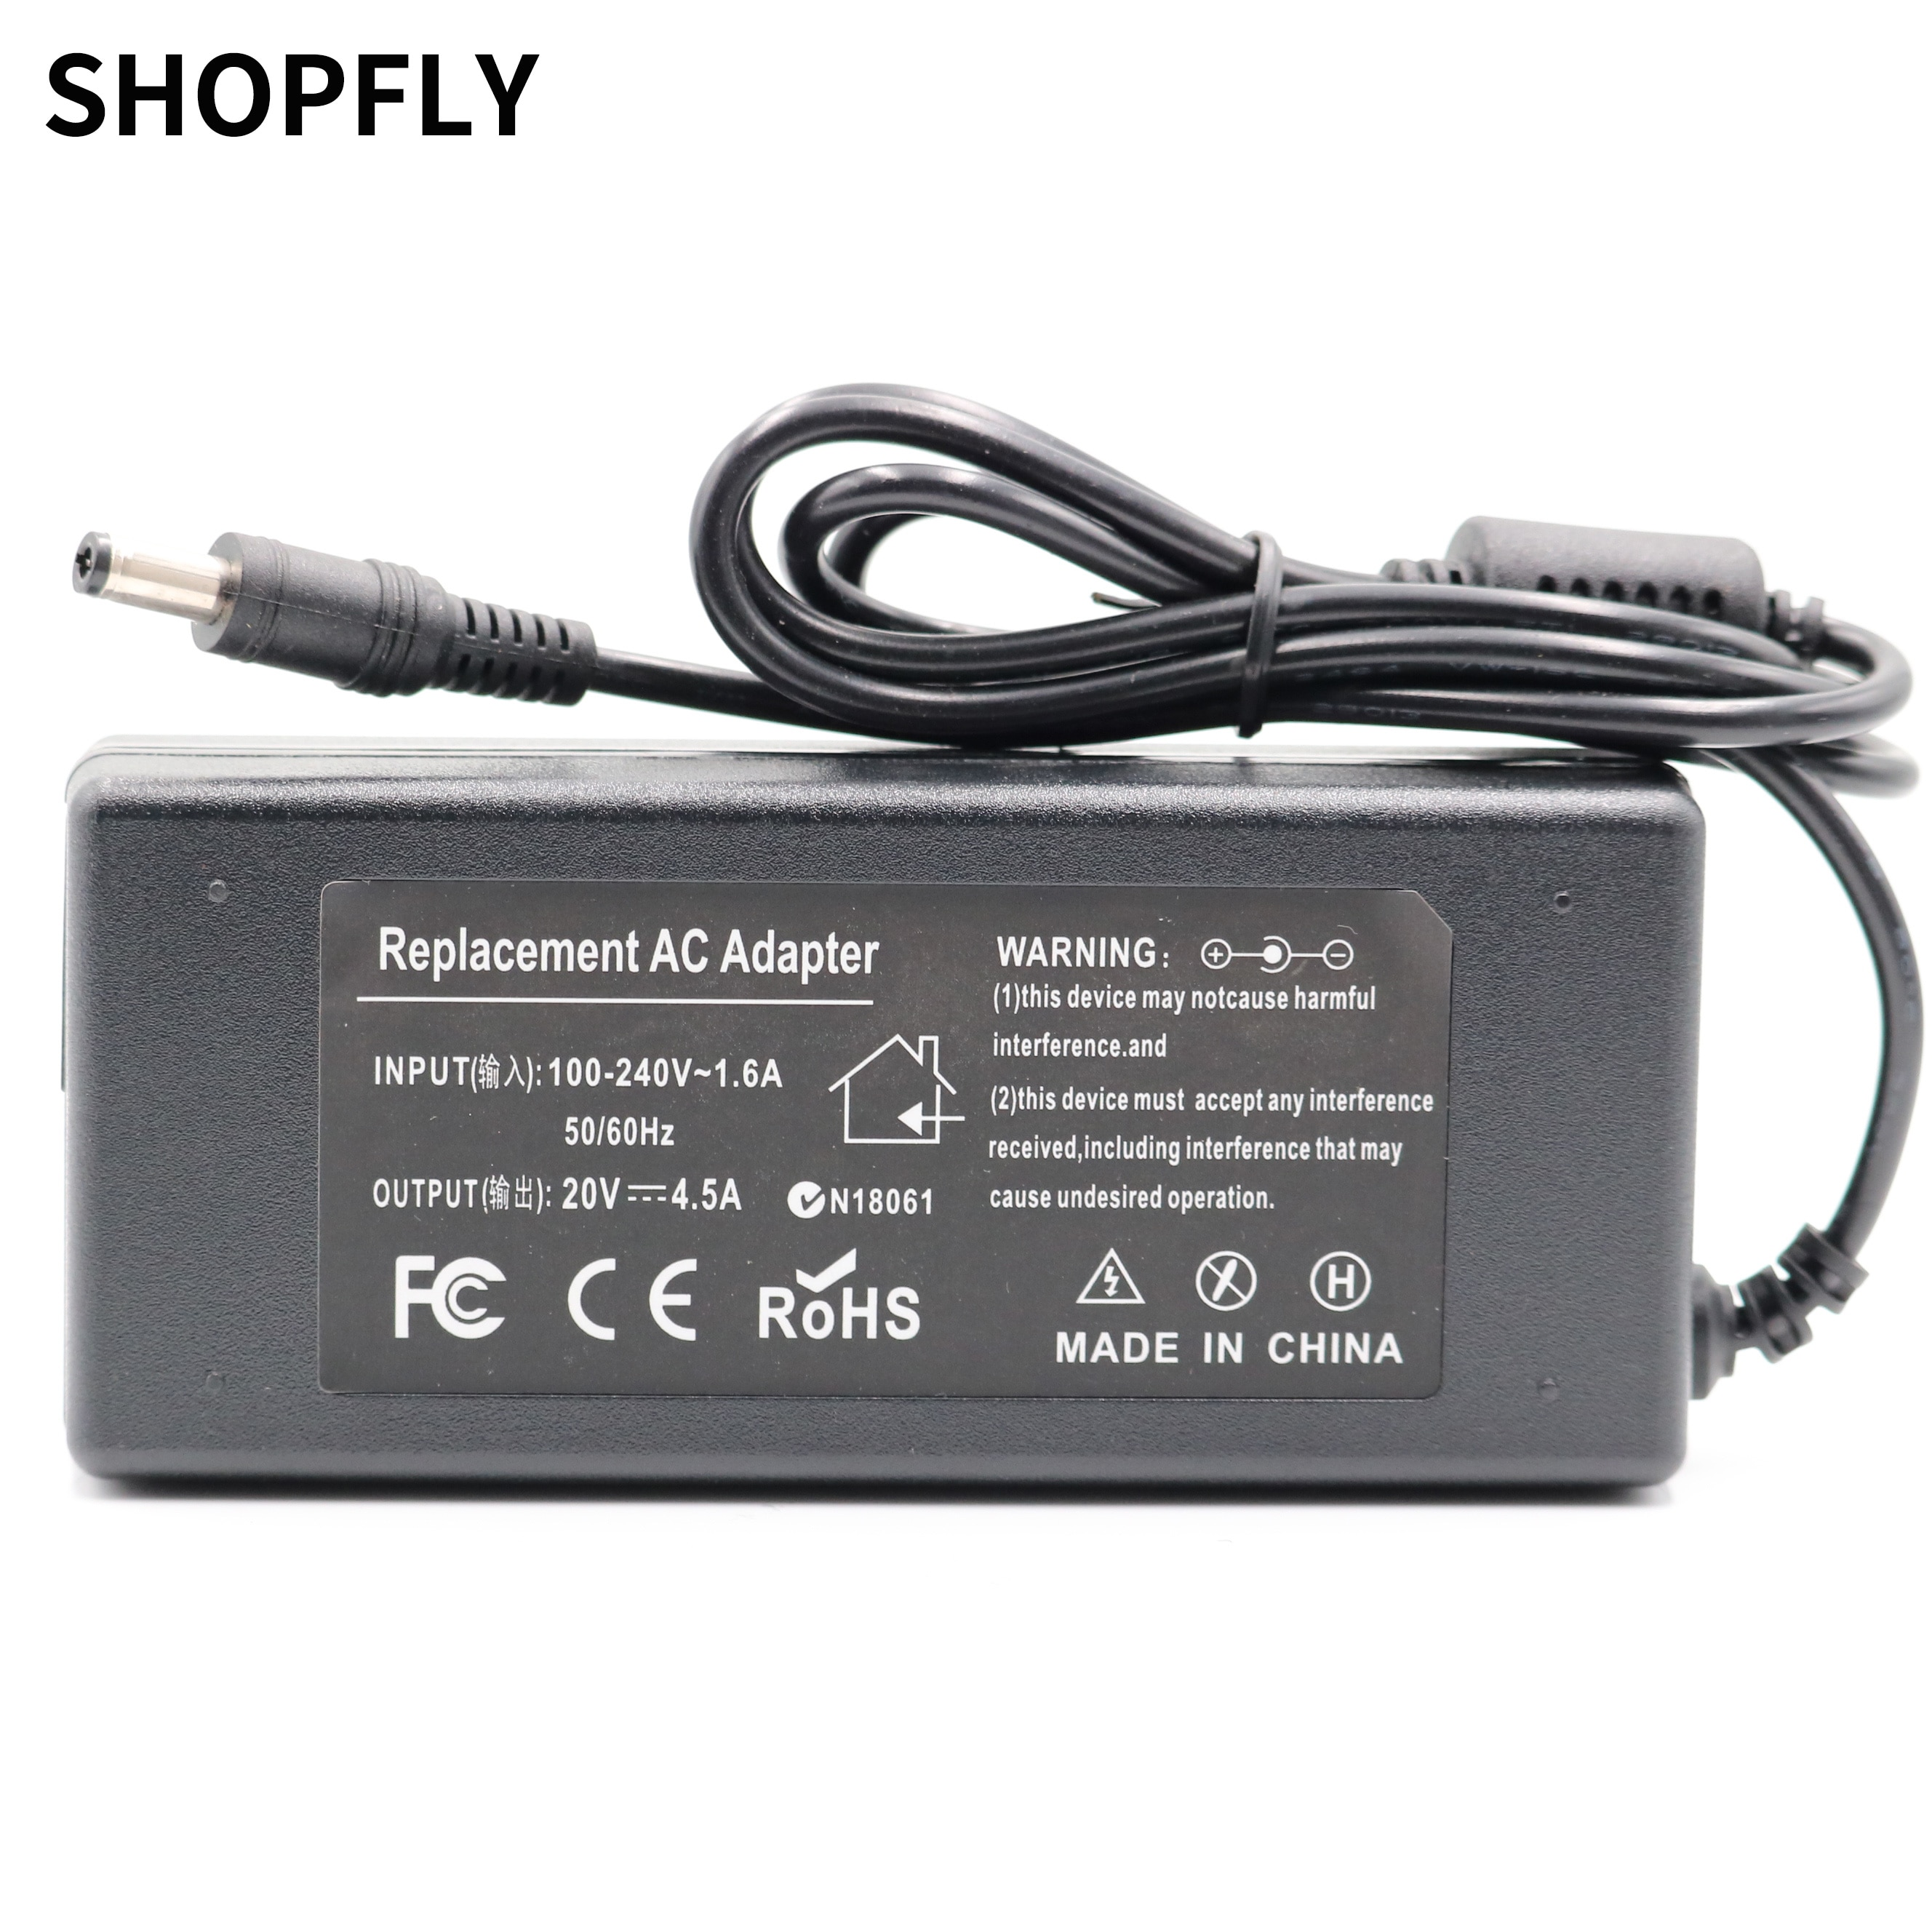 20v 4.5a 90W laptop adapter battery charger power supply for lenovo B570 G480 G485 G560 G560e G565 G570 G575 G580 G585 G780 100% new lenovo g570 g575 bottom case cover